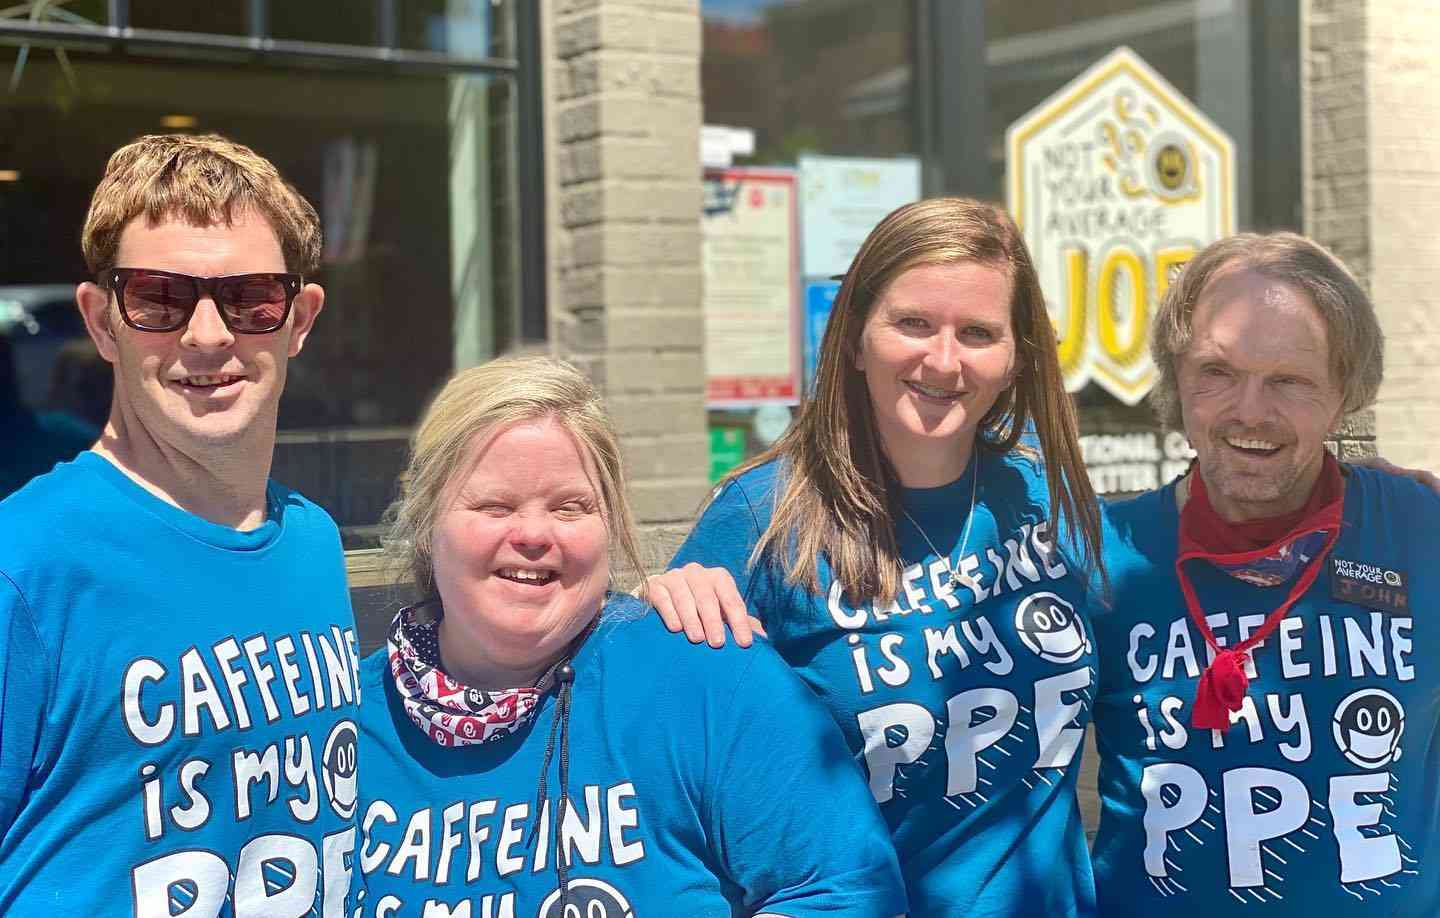 Group wearing 'Caffeine is my PPE' shirts